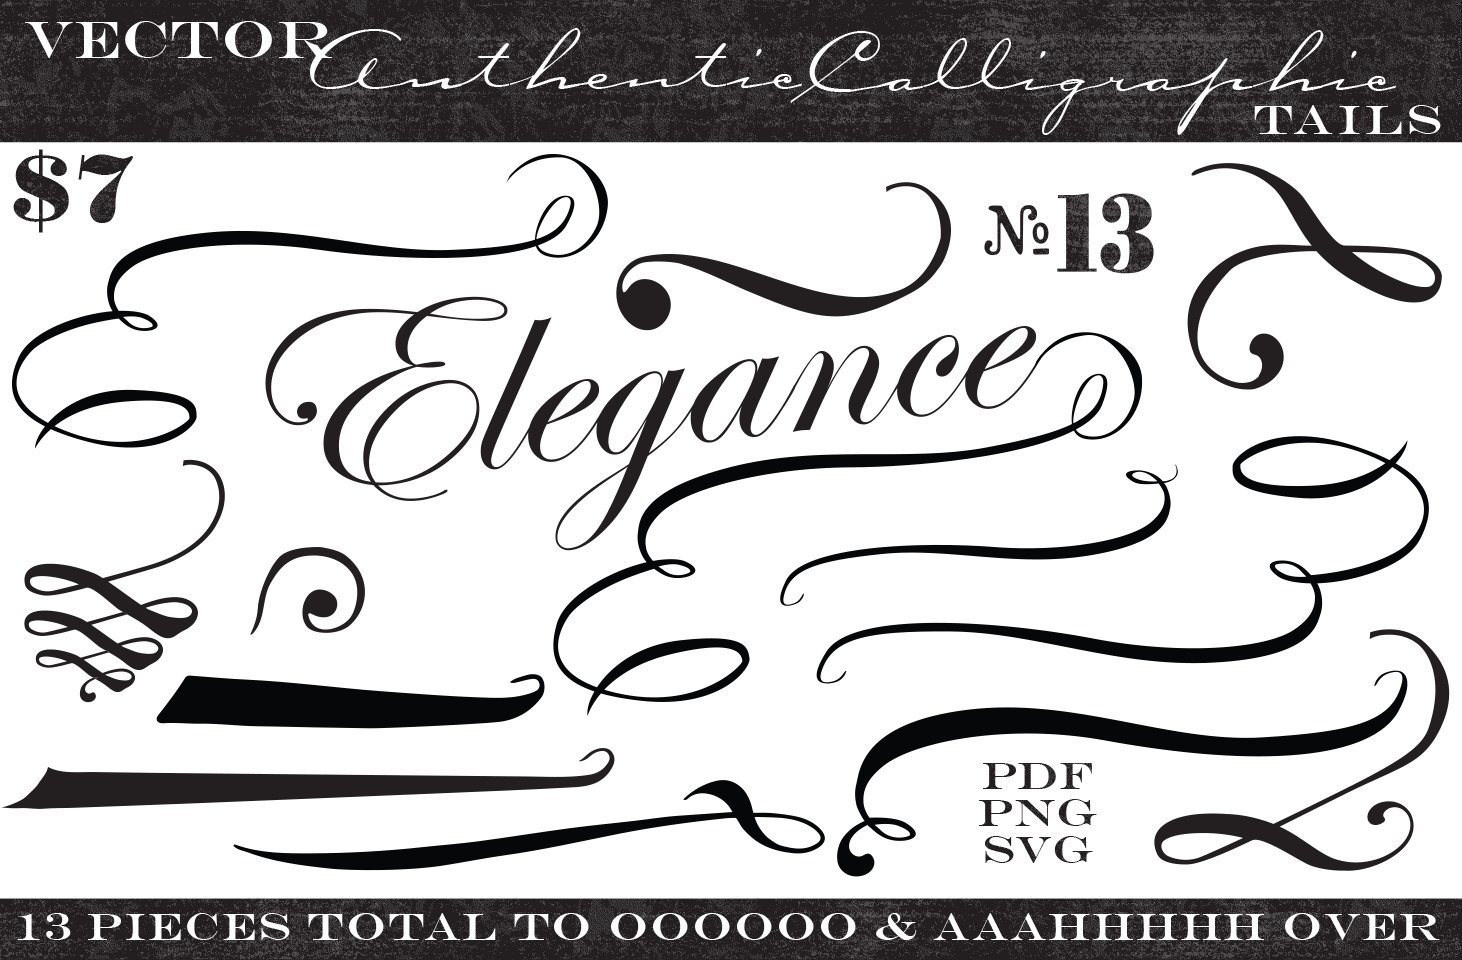 Font Tails Svg Vector Text Tails Font Swoosh Text Swoosh: Vintage Vector Calligraphic Tails